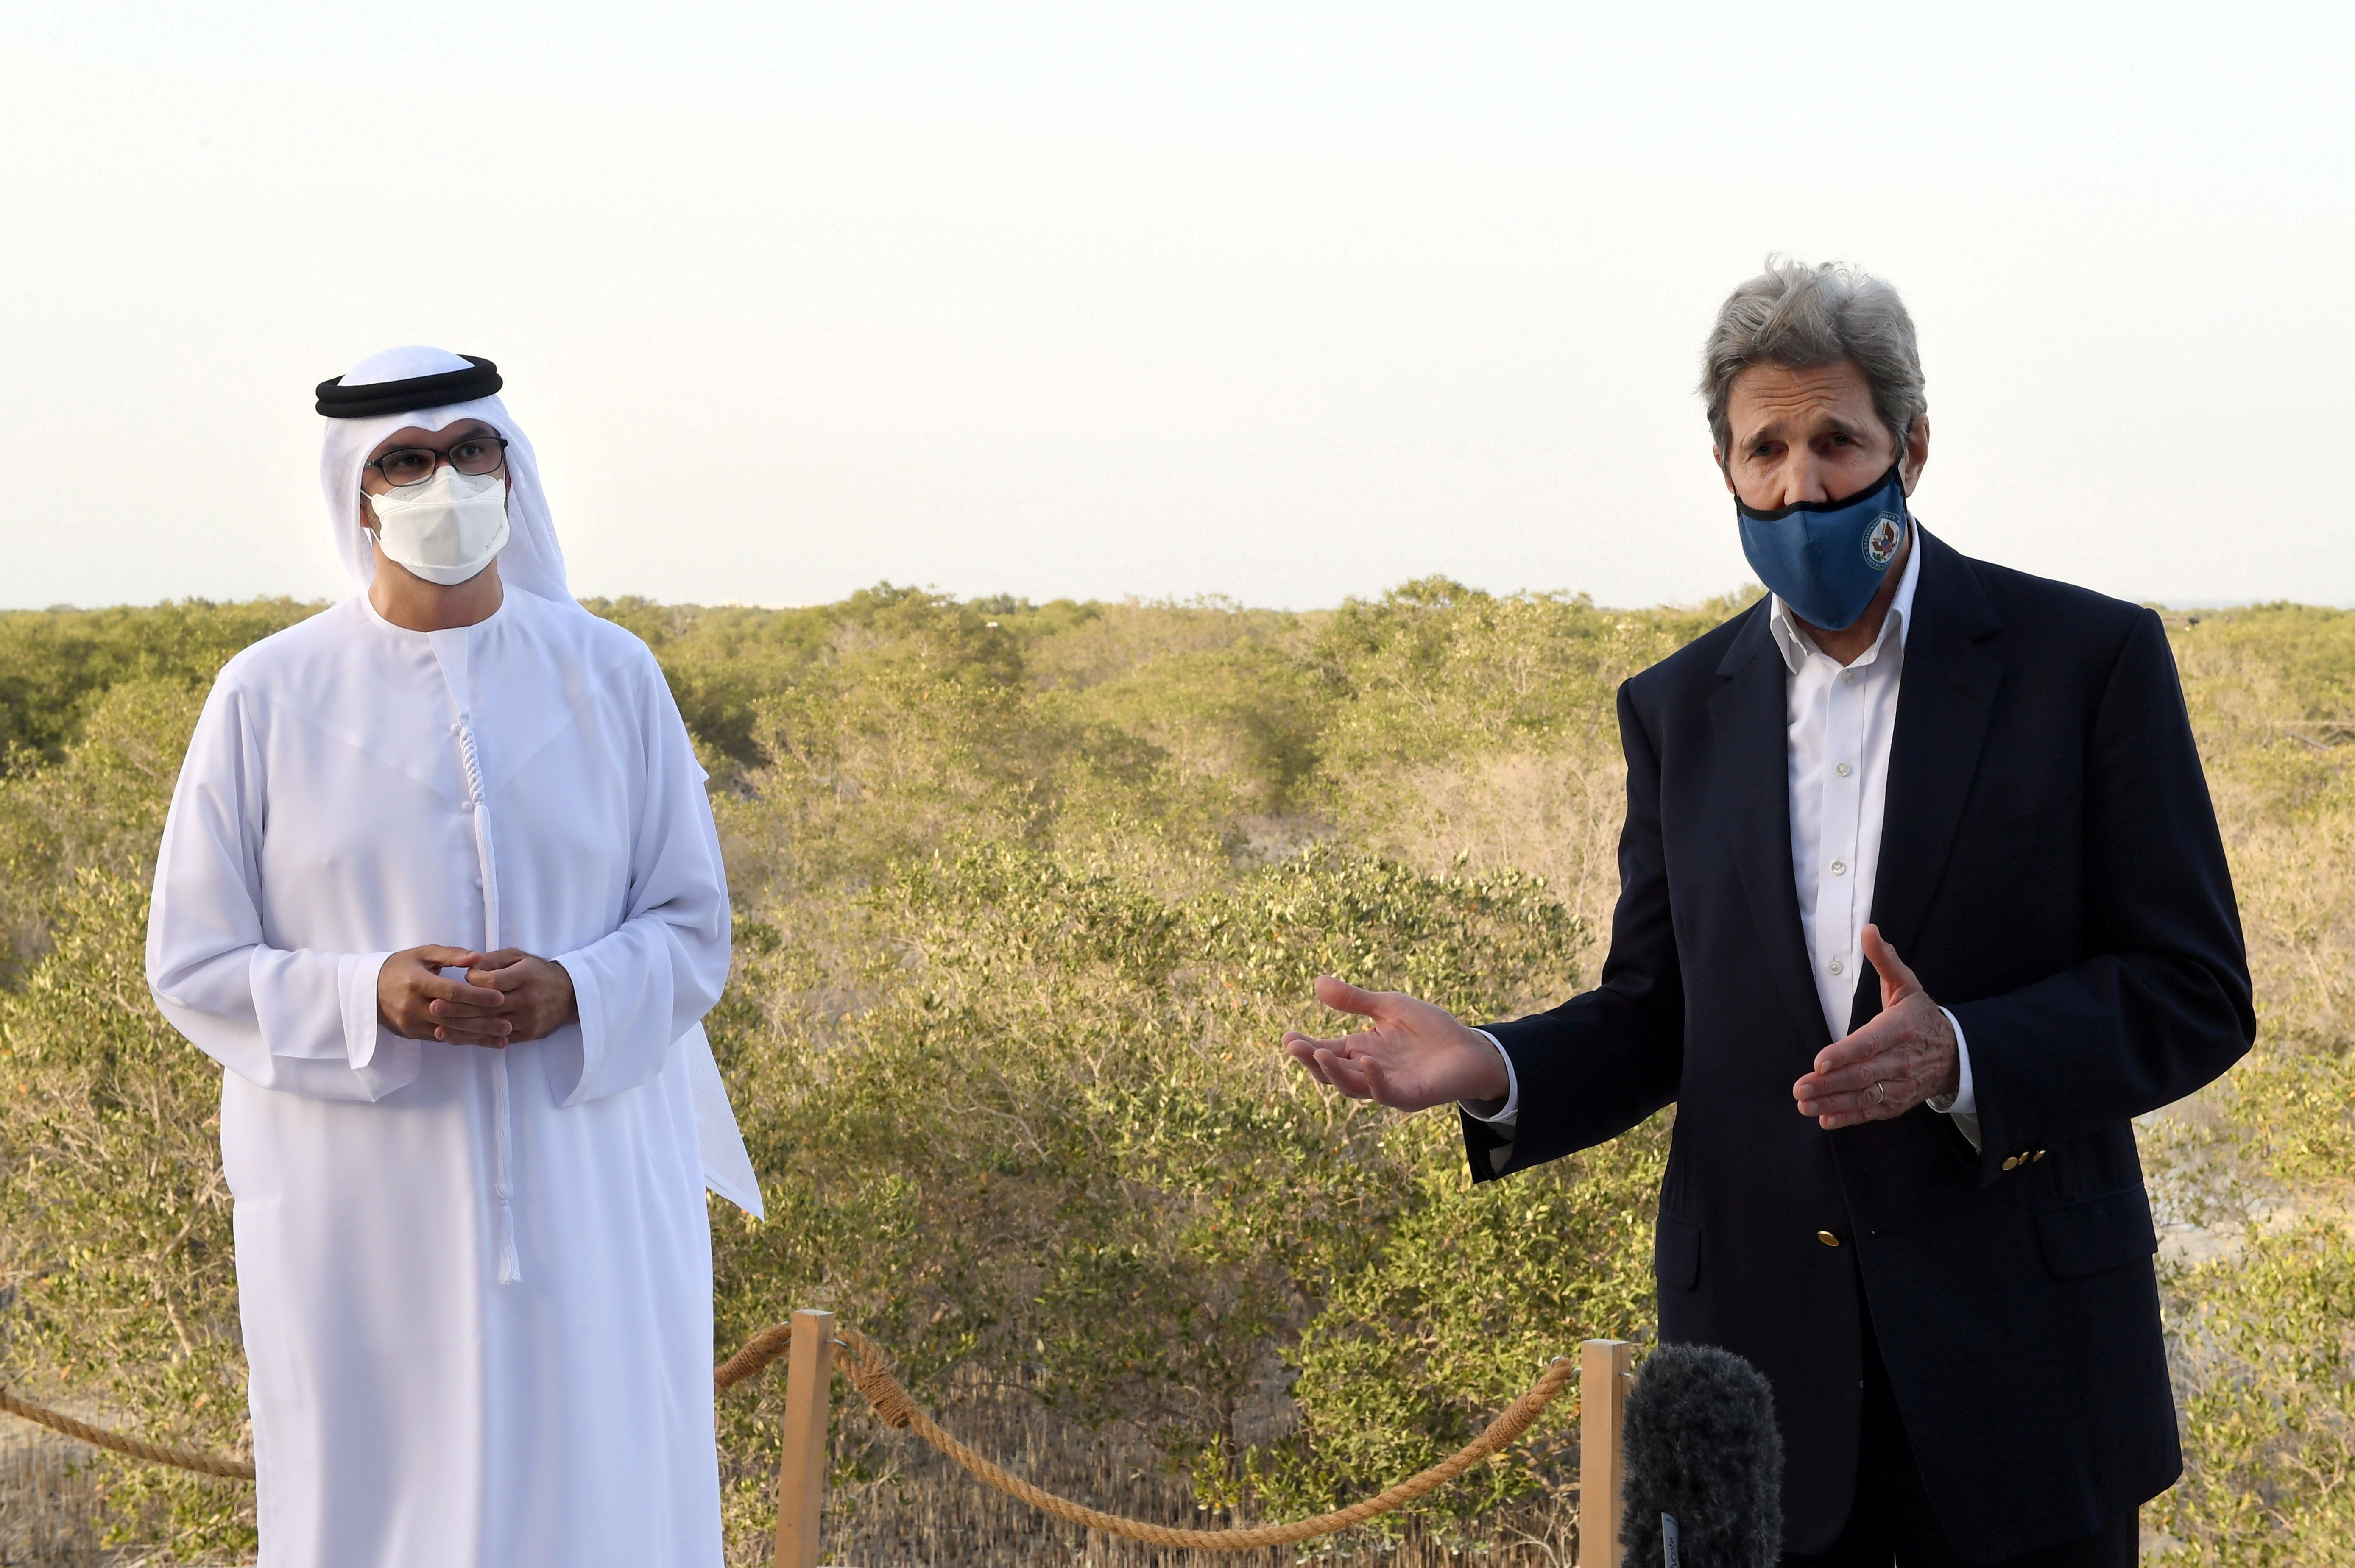 U.S. Special Presidential Envoy for Climate John Kerry speaks alongside UAE Special Envoy for Climate Change and Abu Dhabi National Oil Company CEO, Sultan Ahmed Al Jaber, during a visit to Jubail Mangrove Park, in Abu Dhabi, United Arab Emirates April 3, 2021.